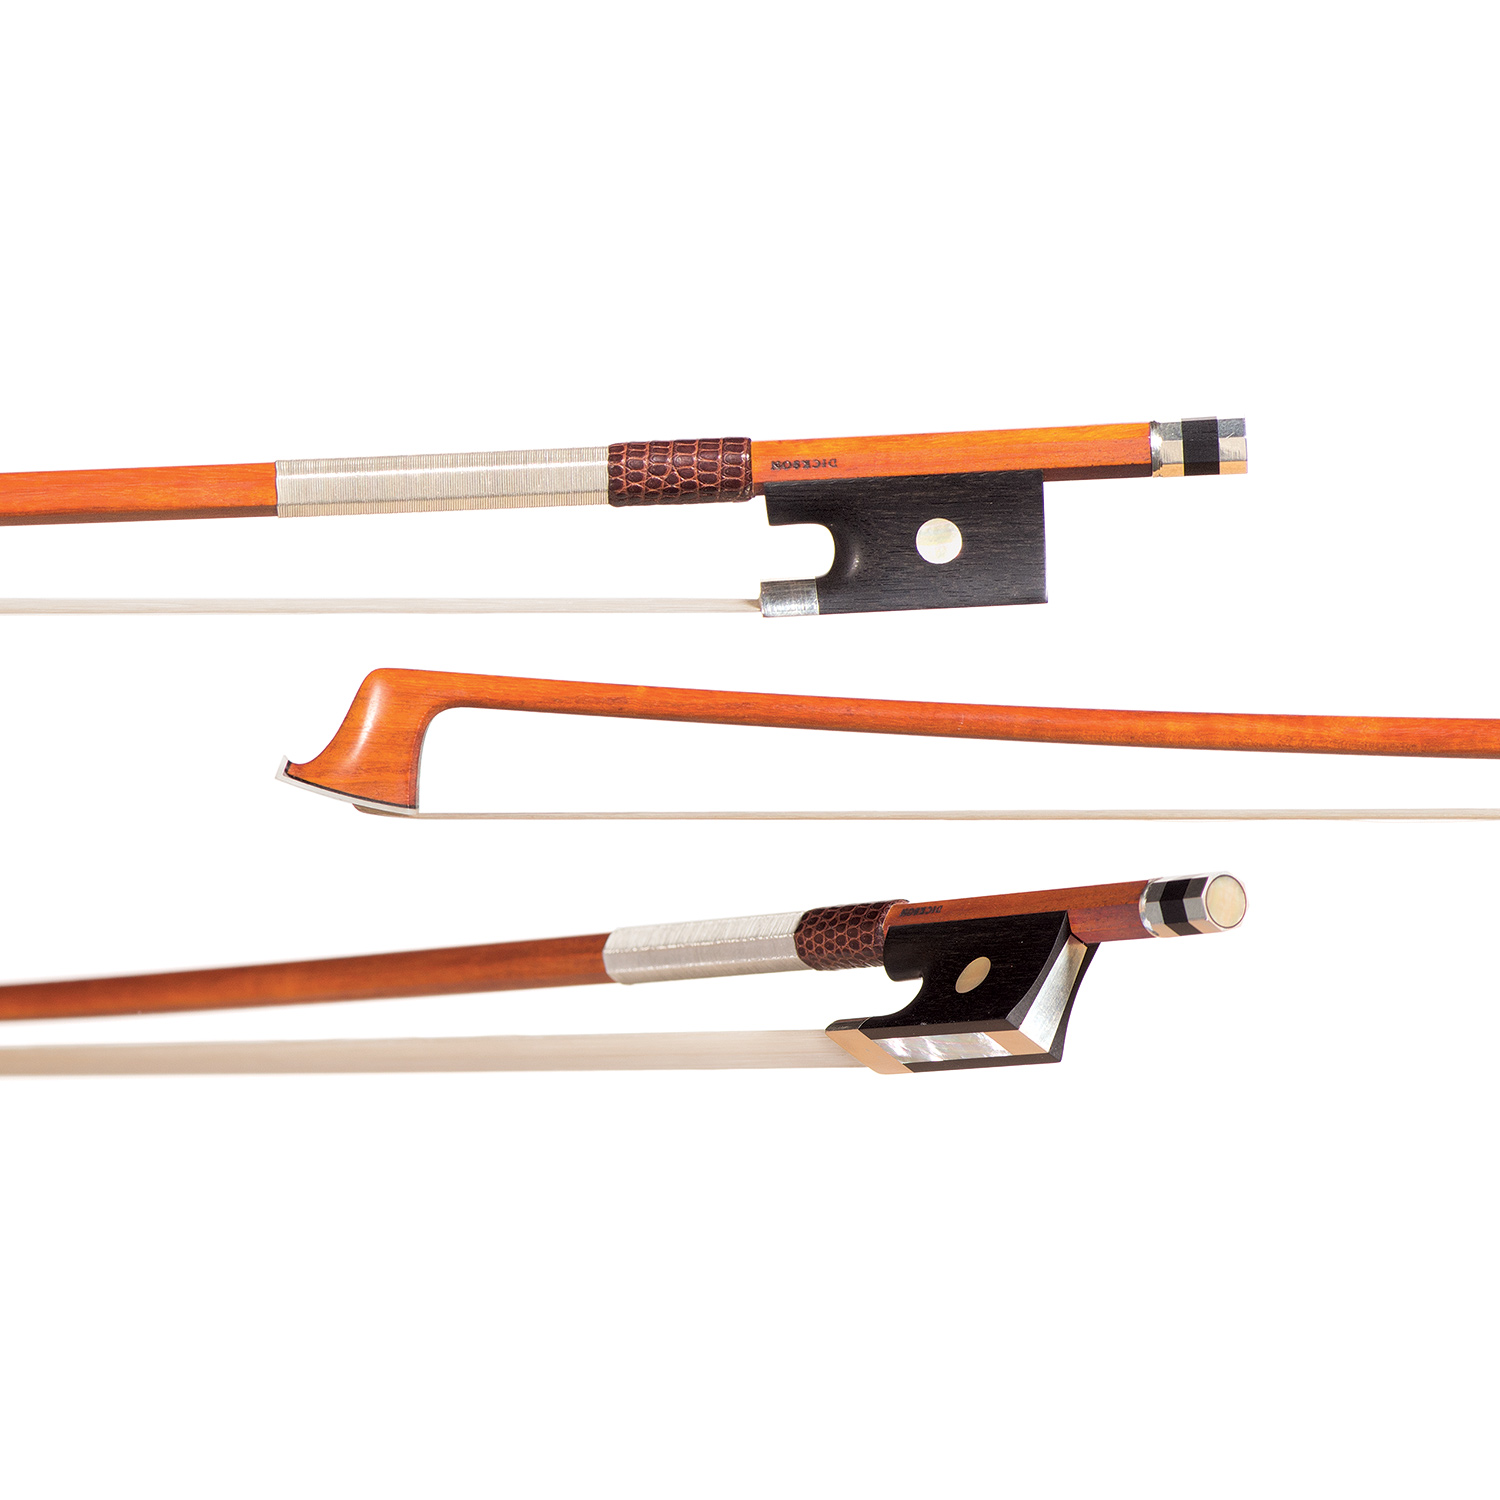 Christopher Dickson violin bow at Carriage House Violins